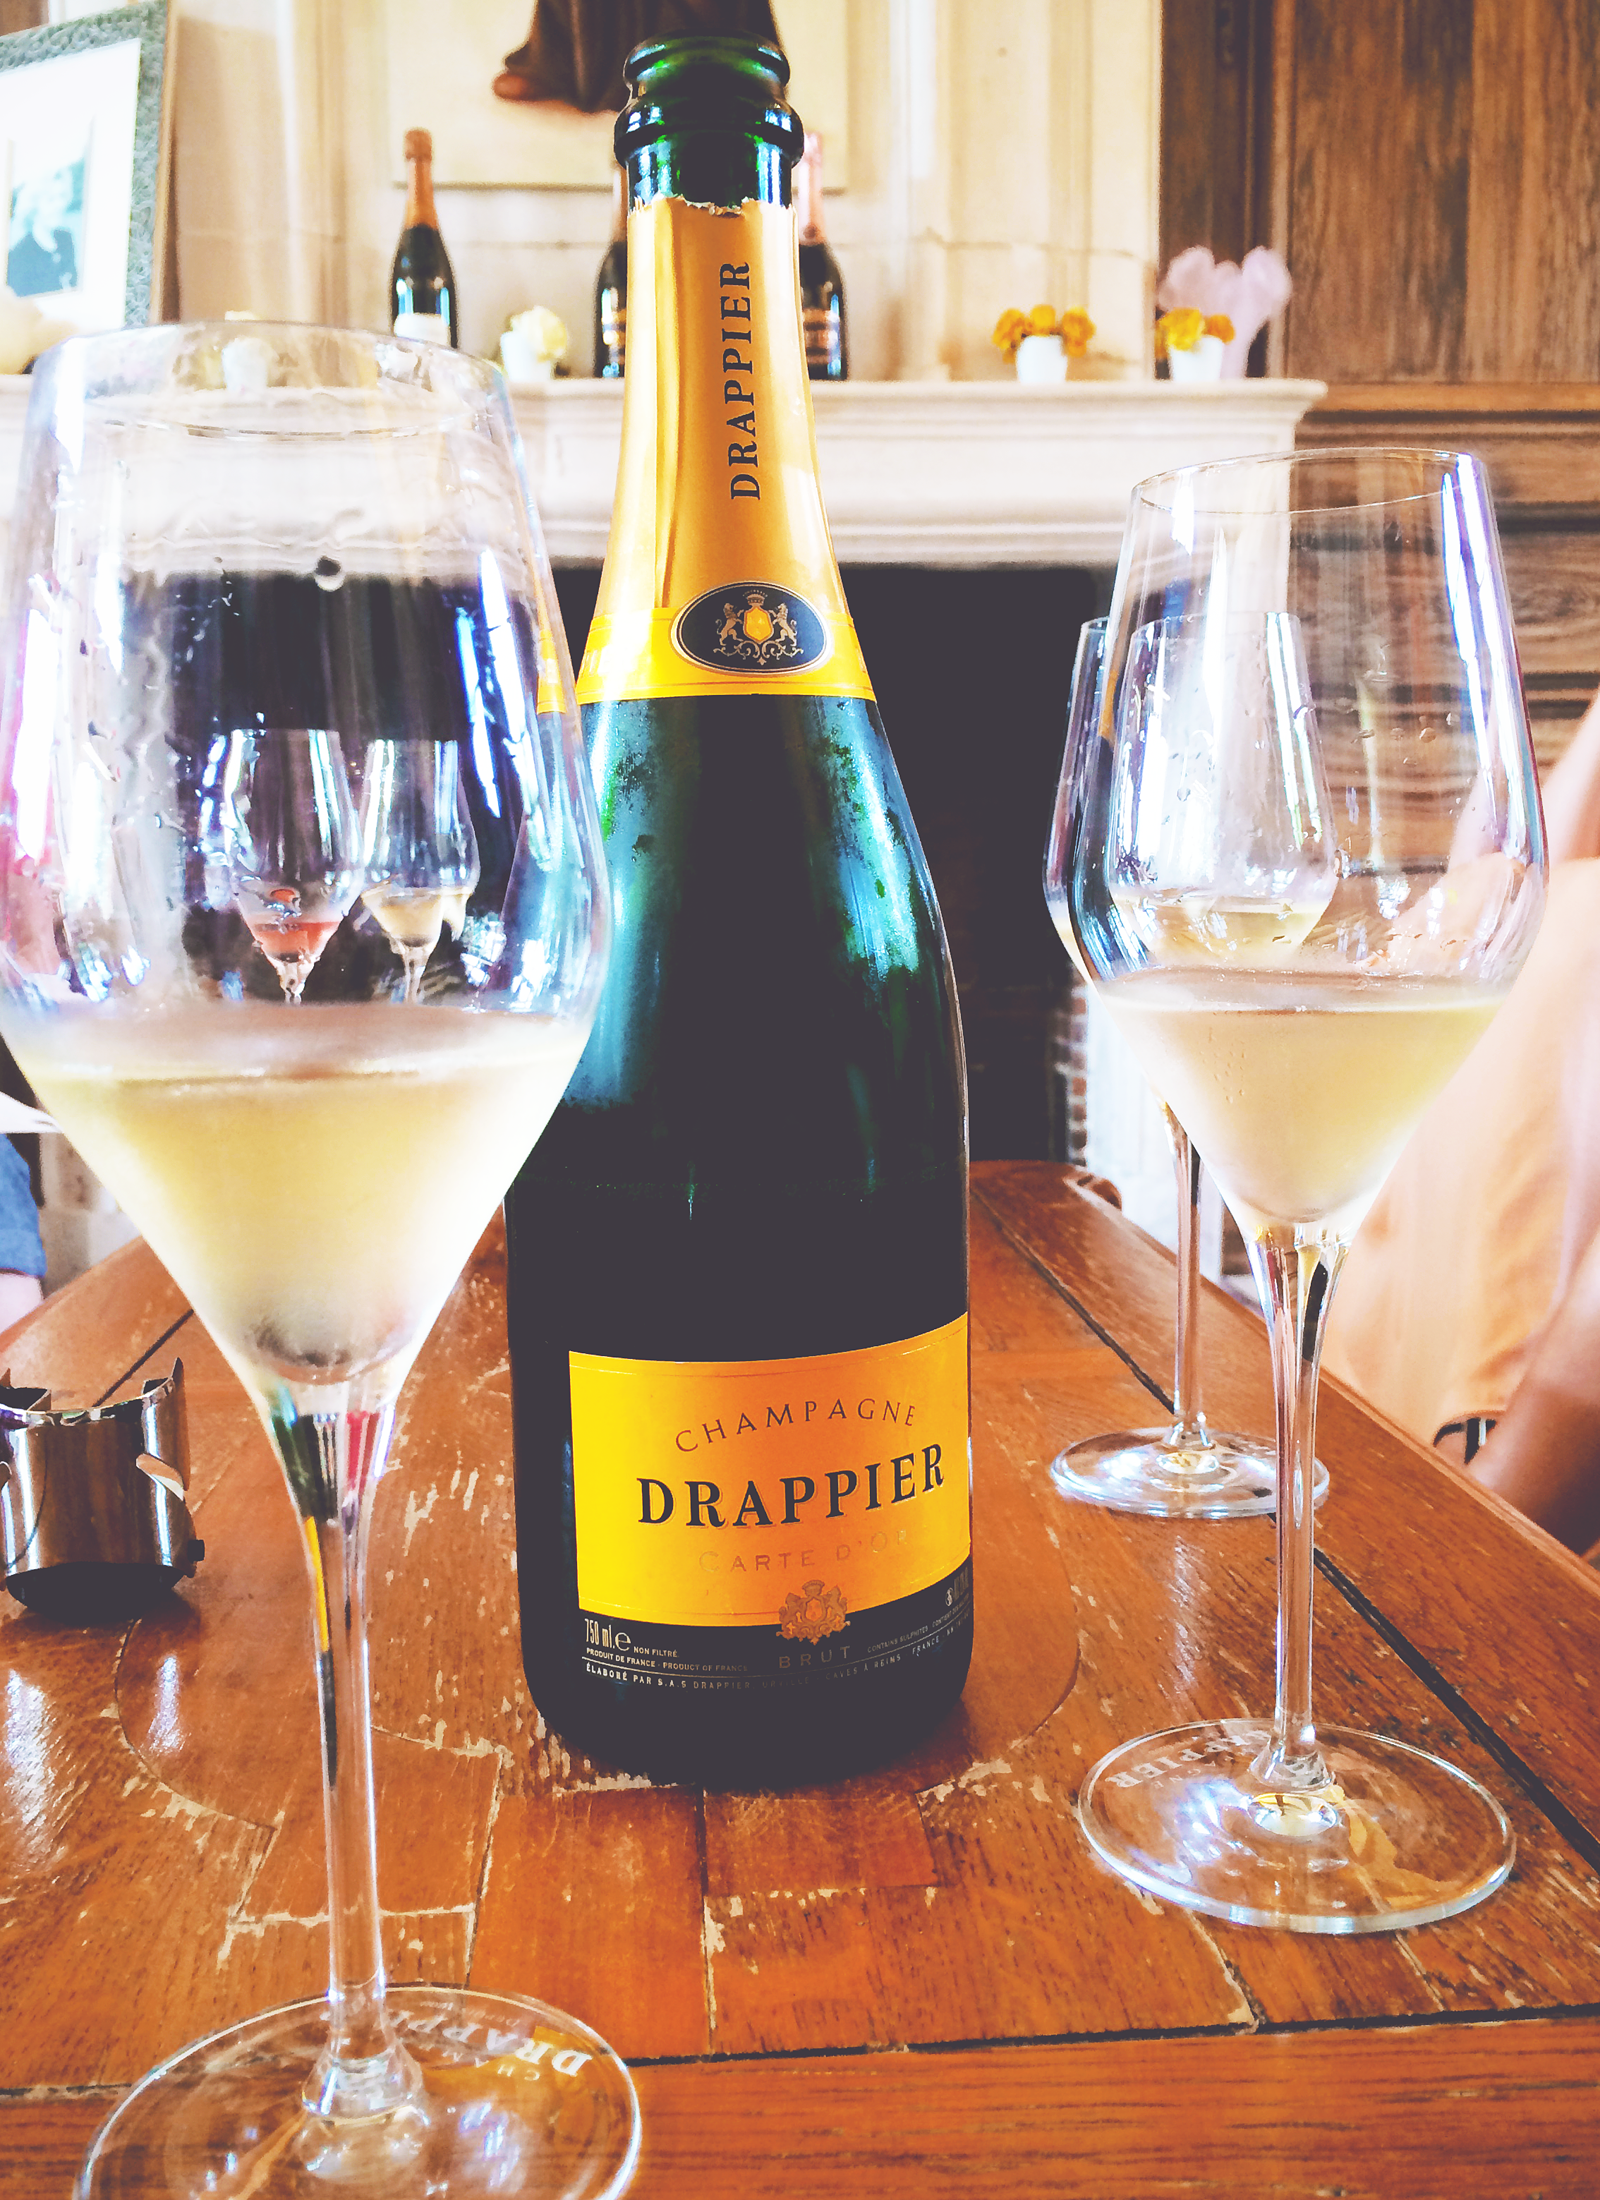 Champagnehuis 'Drappier' in Frankrijk | via It's Travel O'Clock